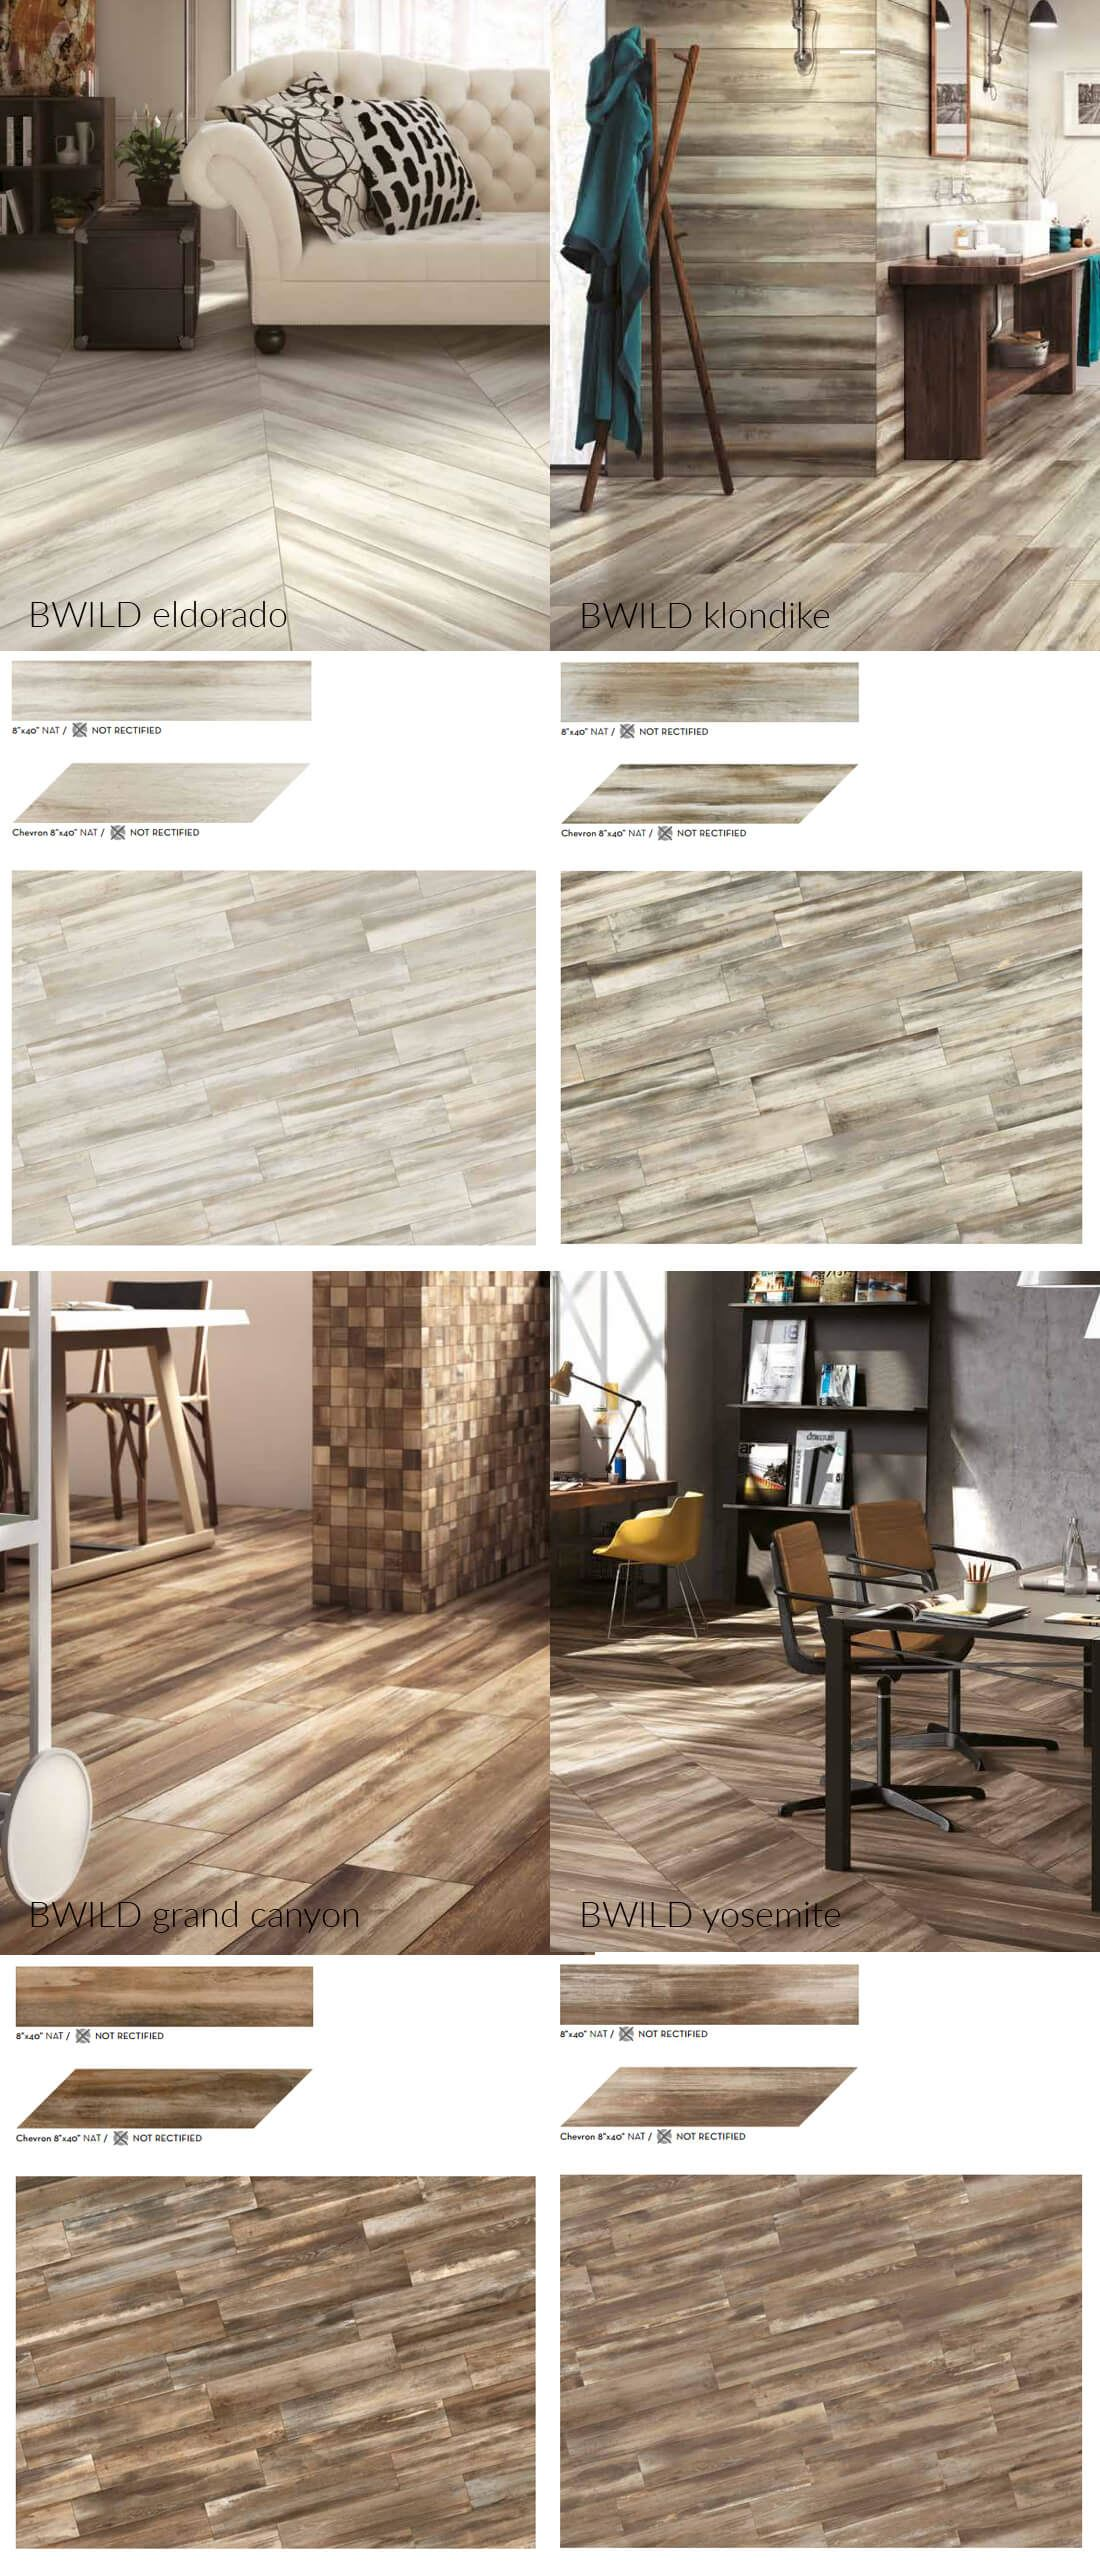 bwild-wood-look-tiles